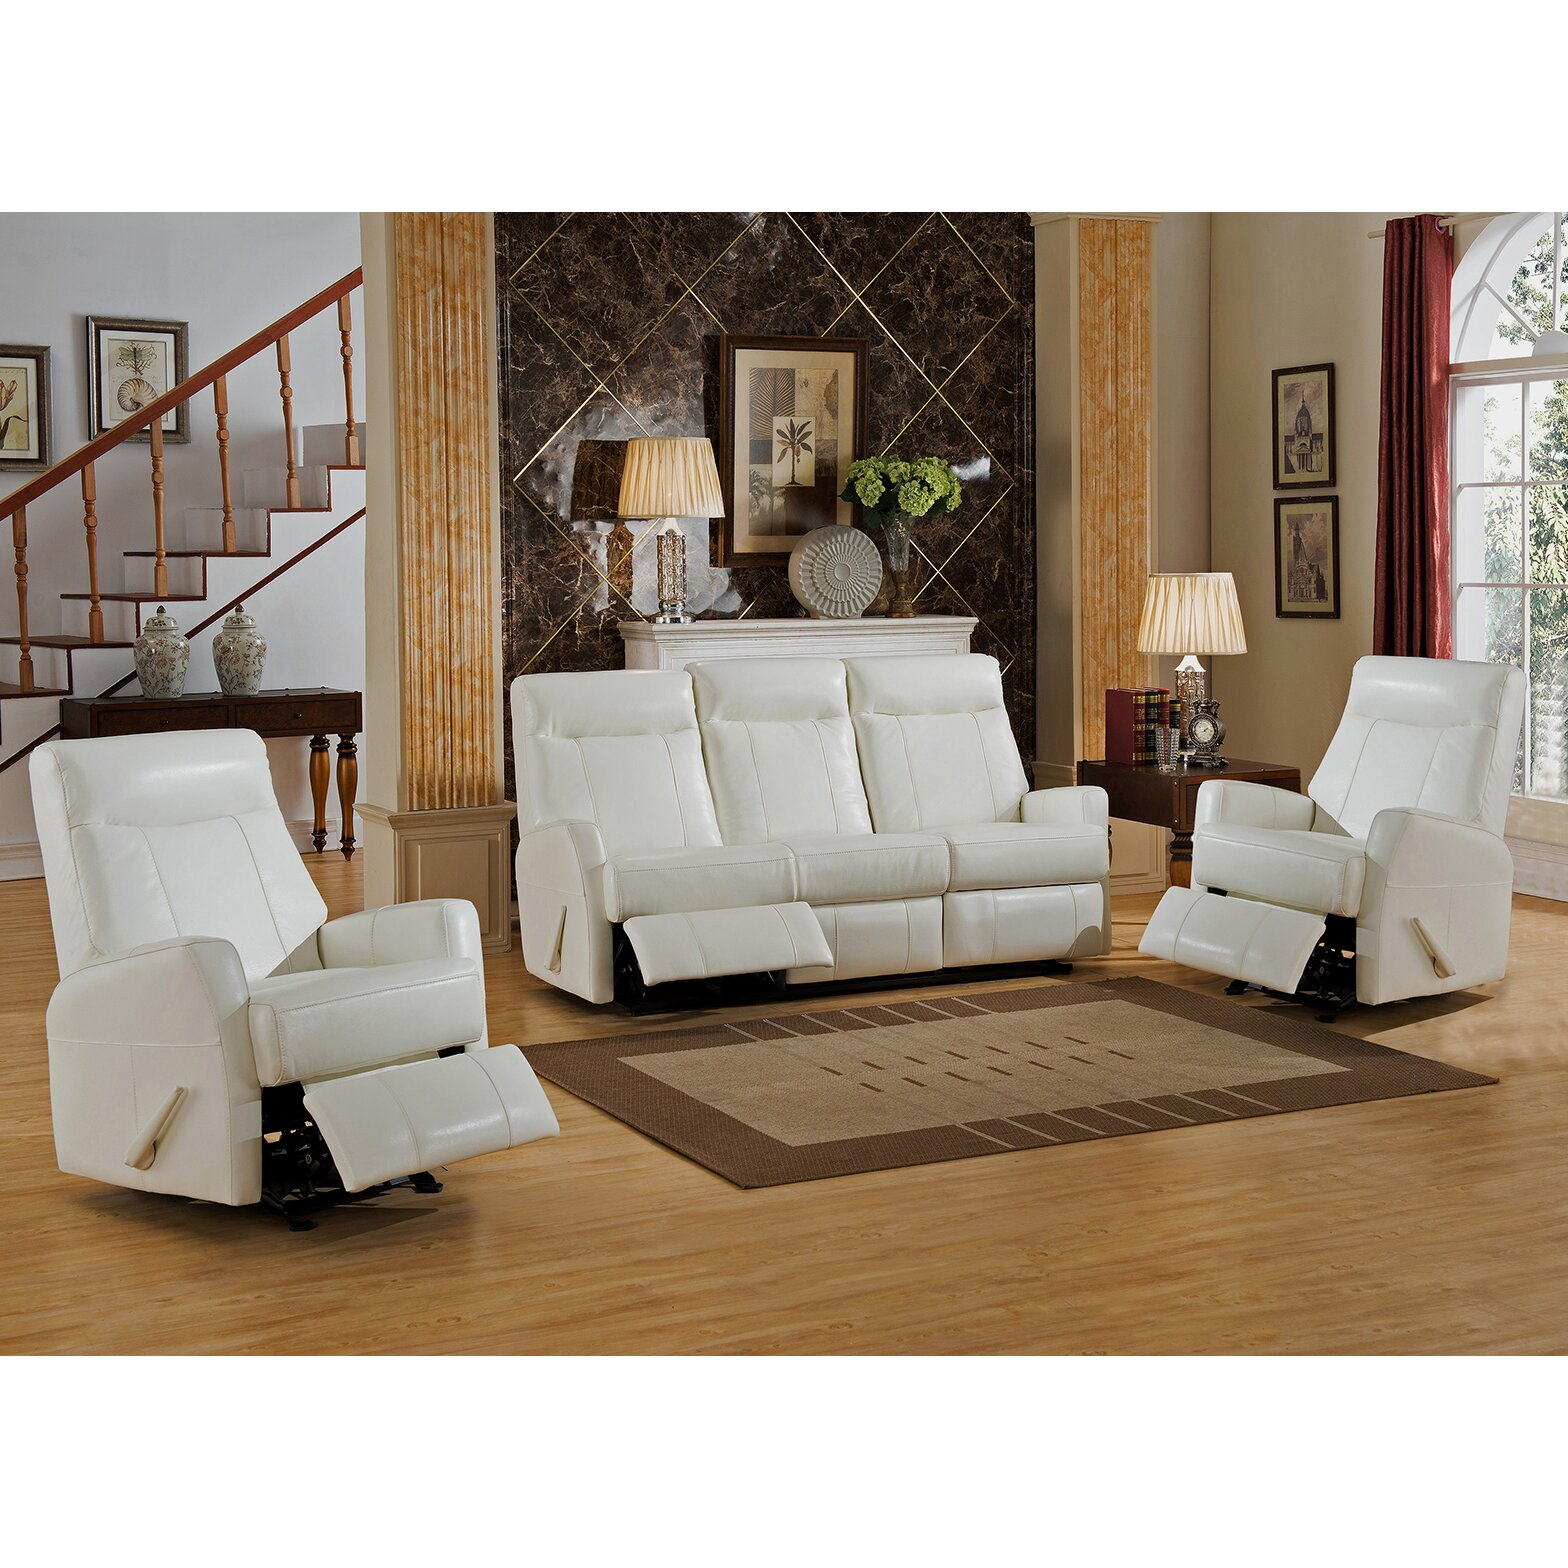 Amax toledo 3 piece leather living room set wayfair for 3 piece living room set